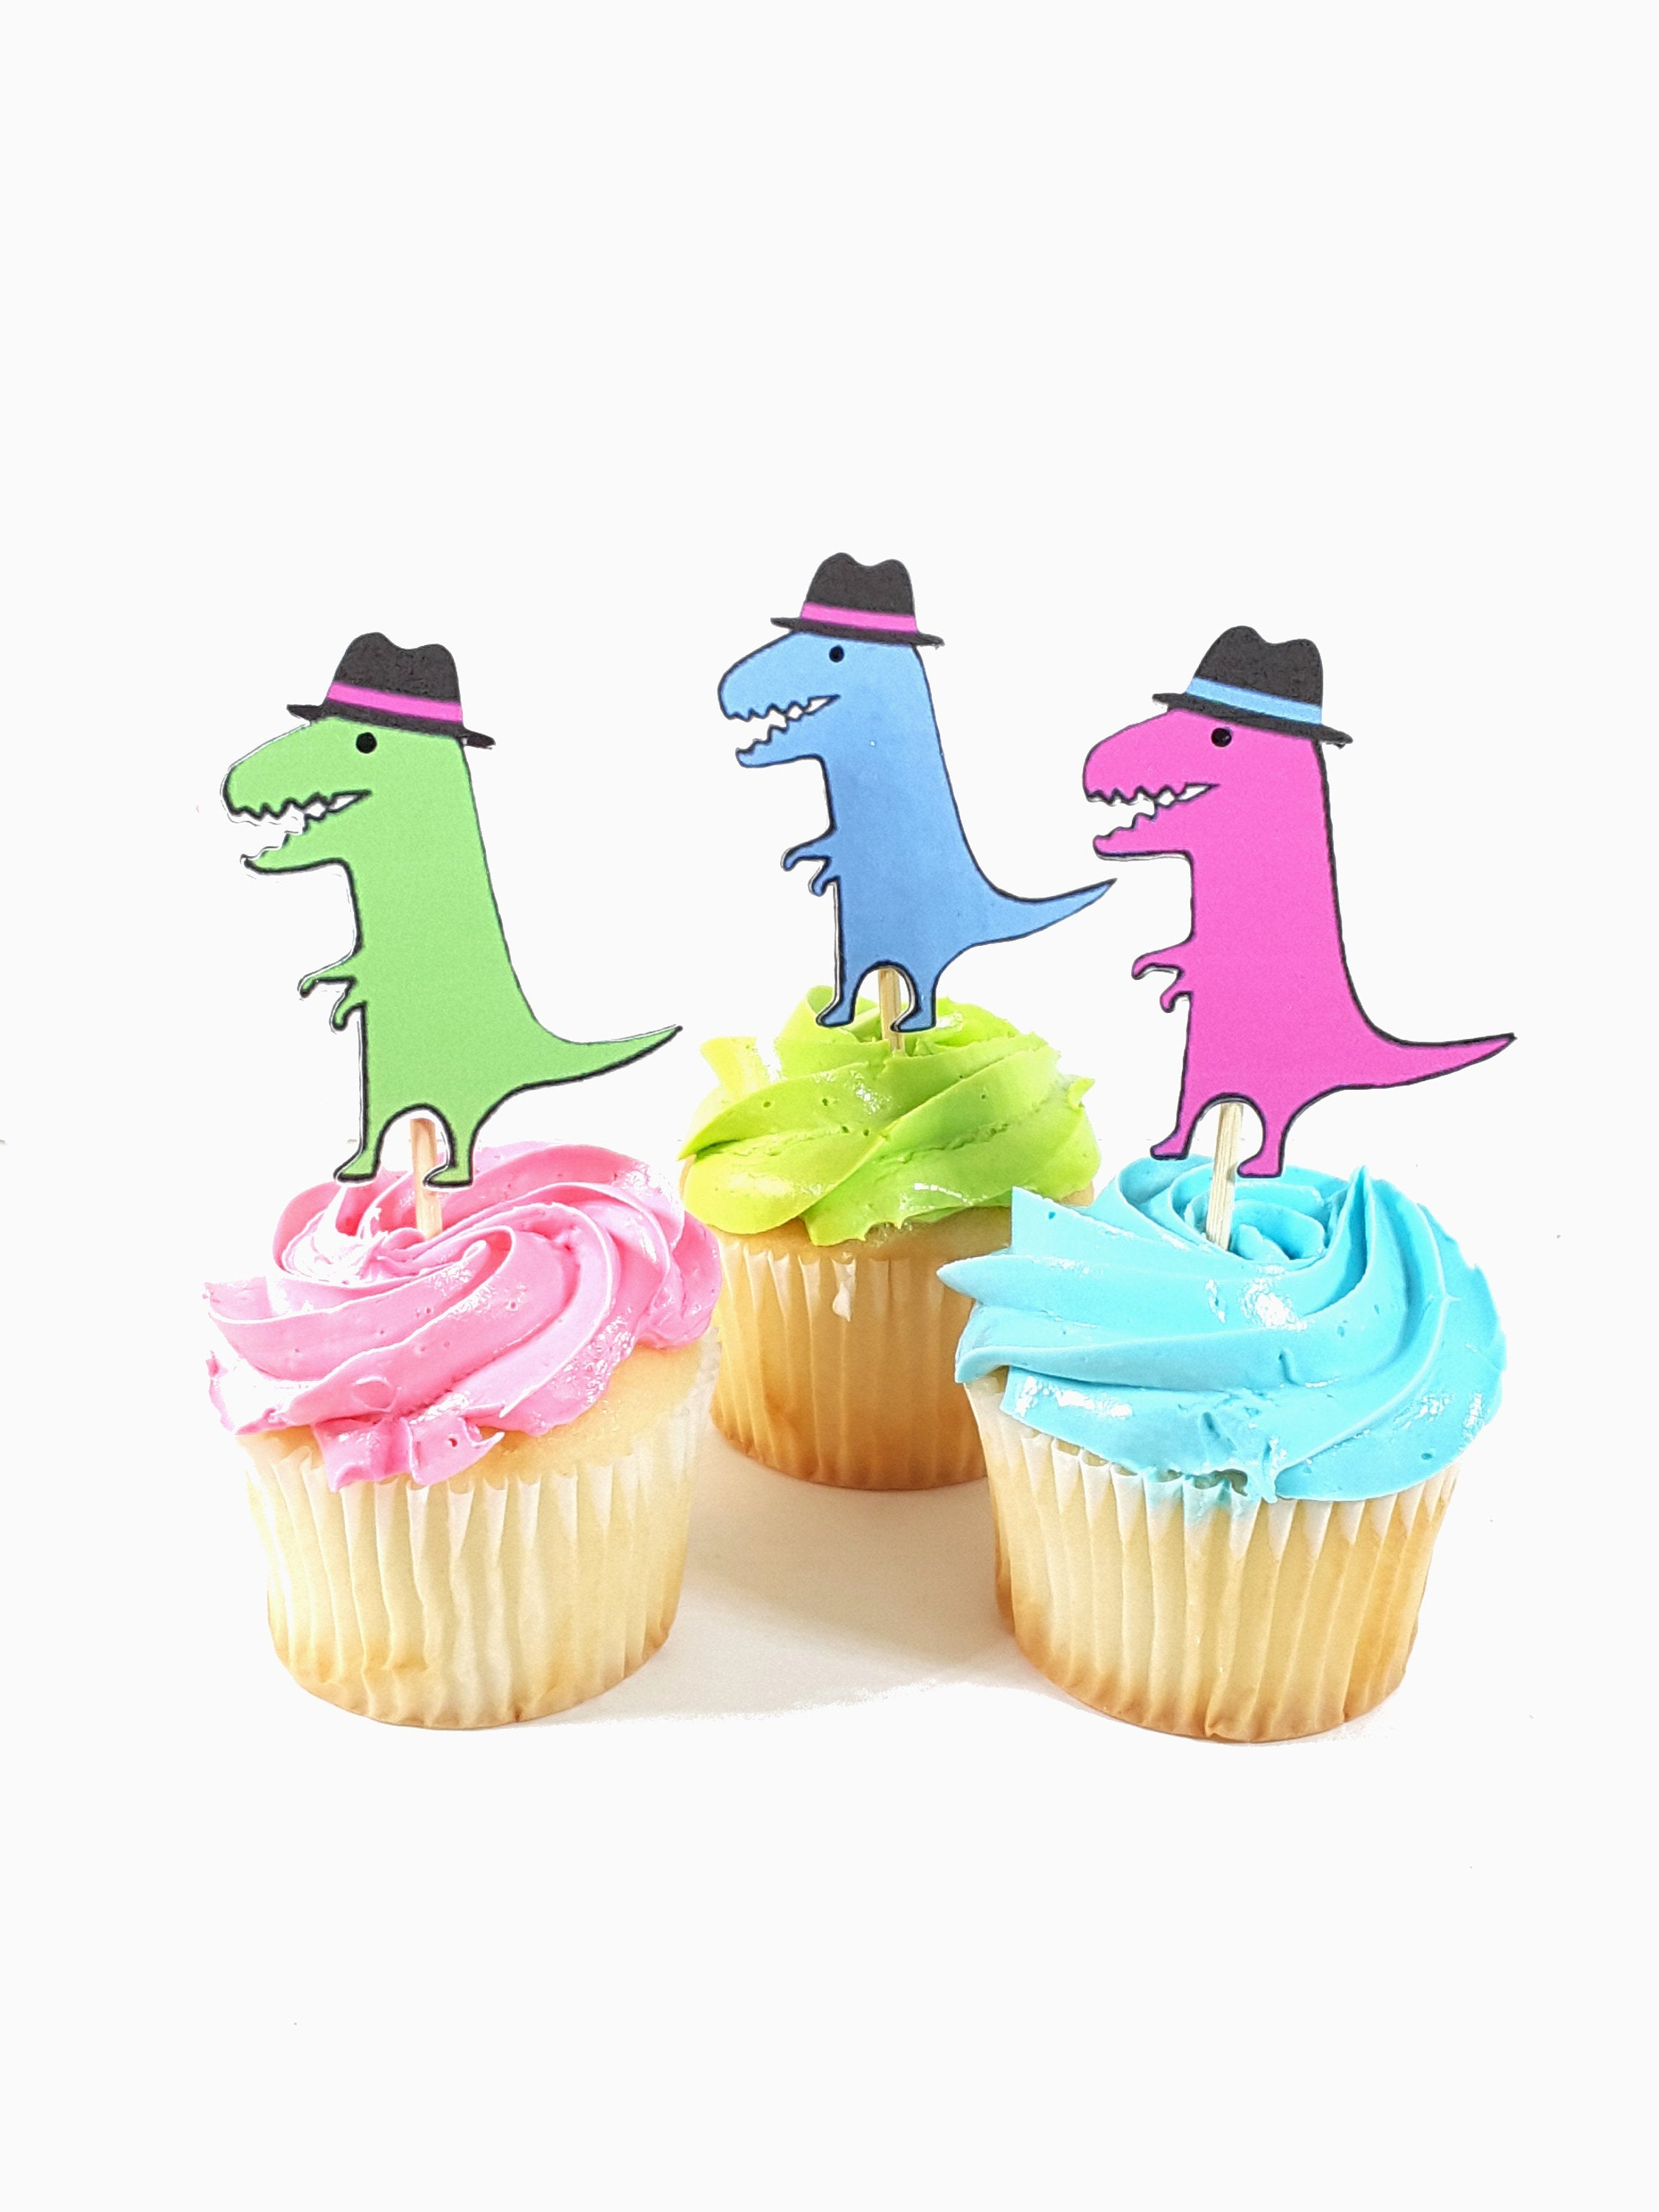 Customized Cupcake Topper featuring Colored and Black Dinosaurs with and without Fedora Hats